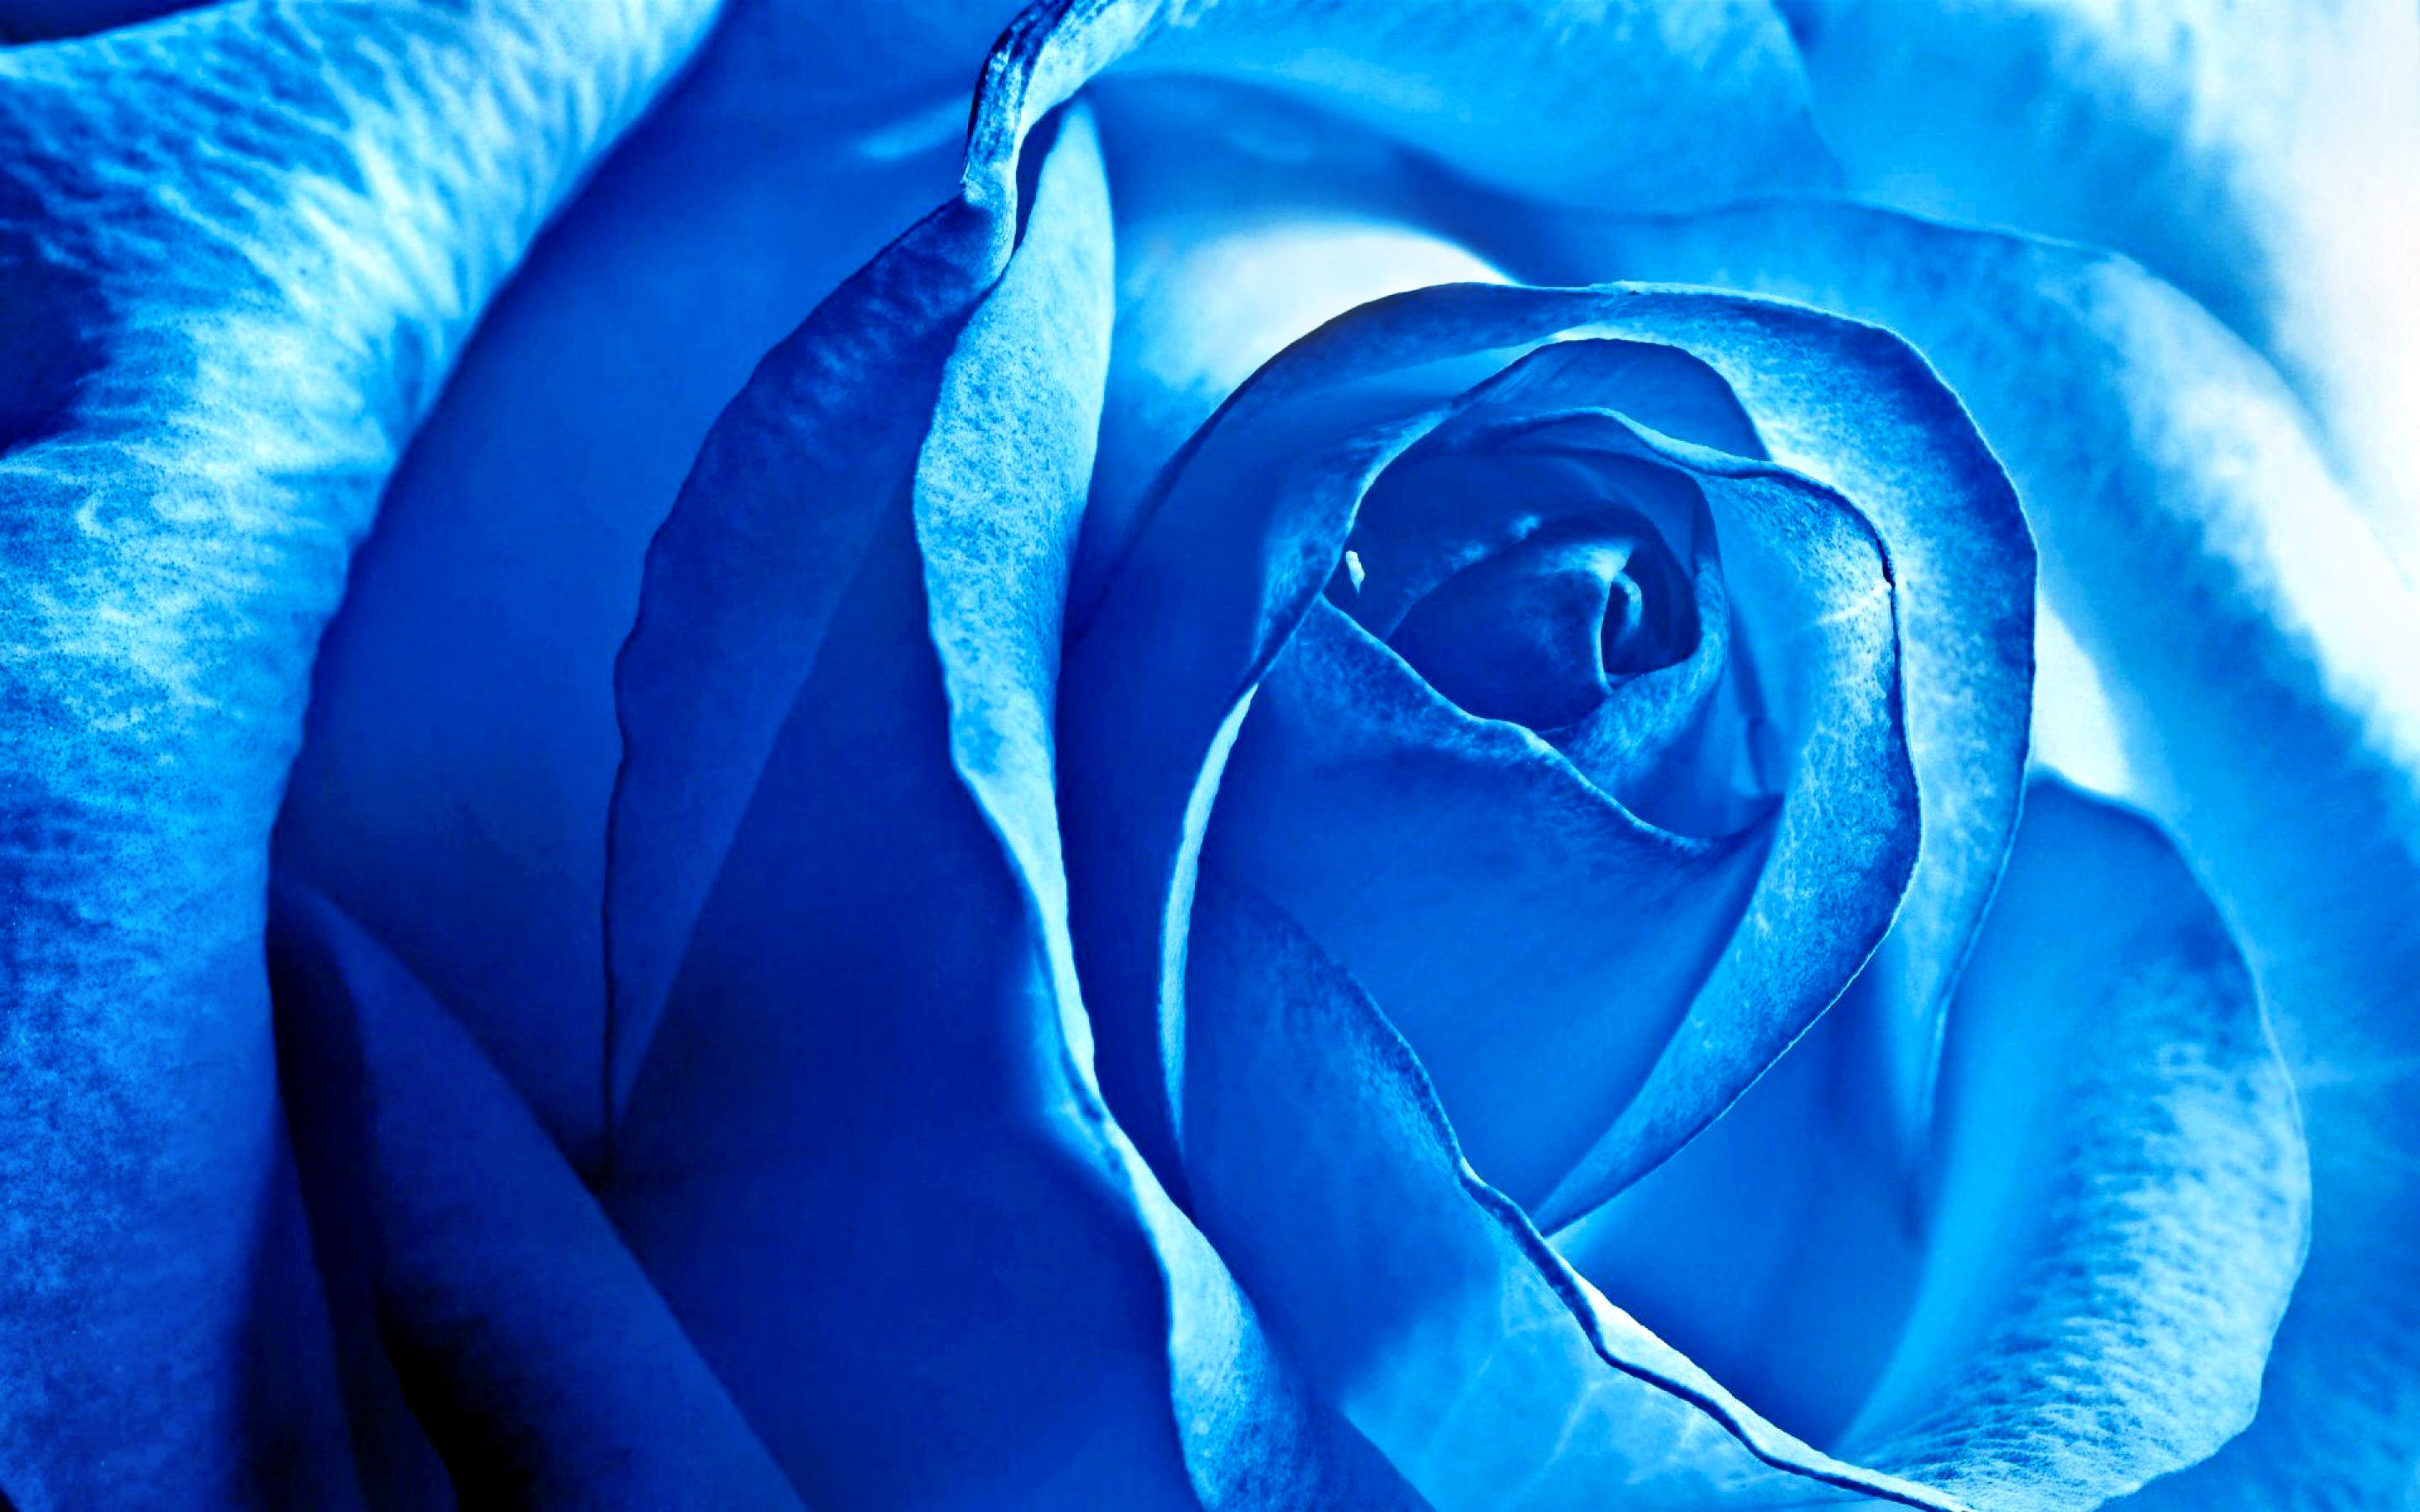 Download hd 2880x1800 Rose desktop wallpaper ID:473365 for free